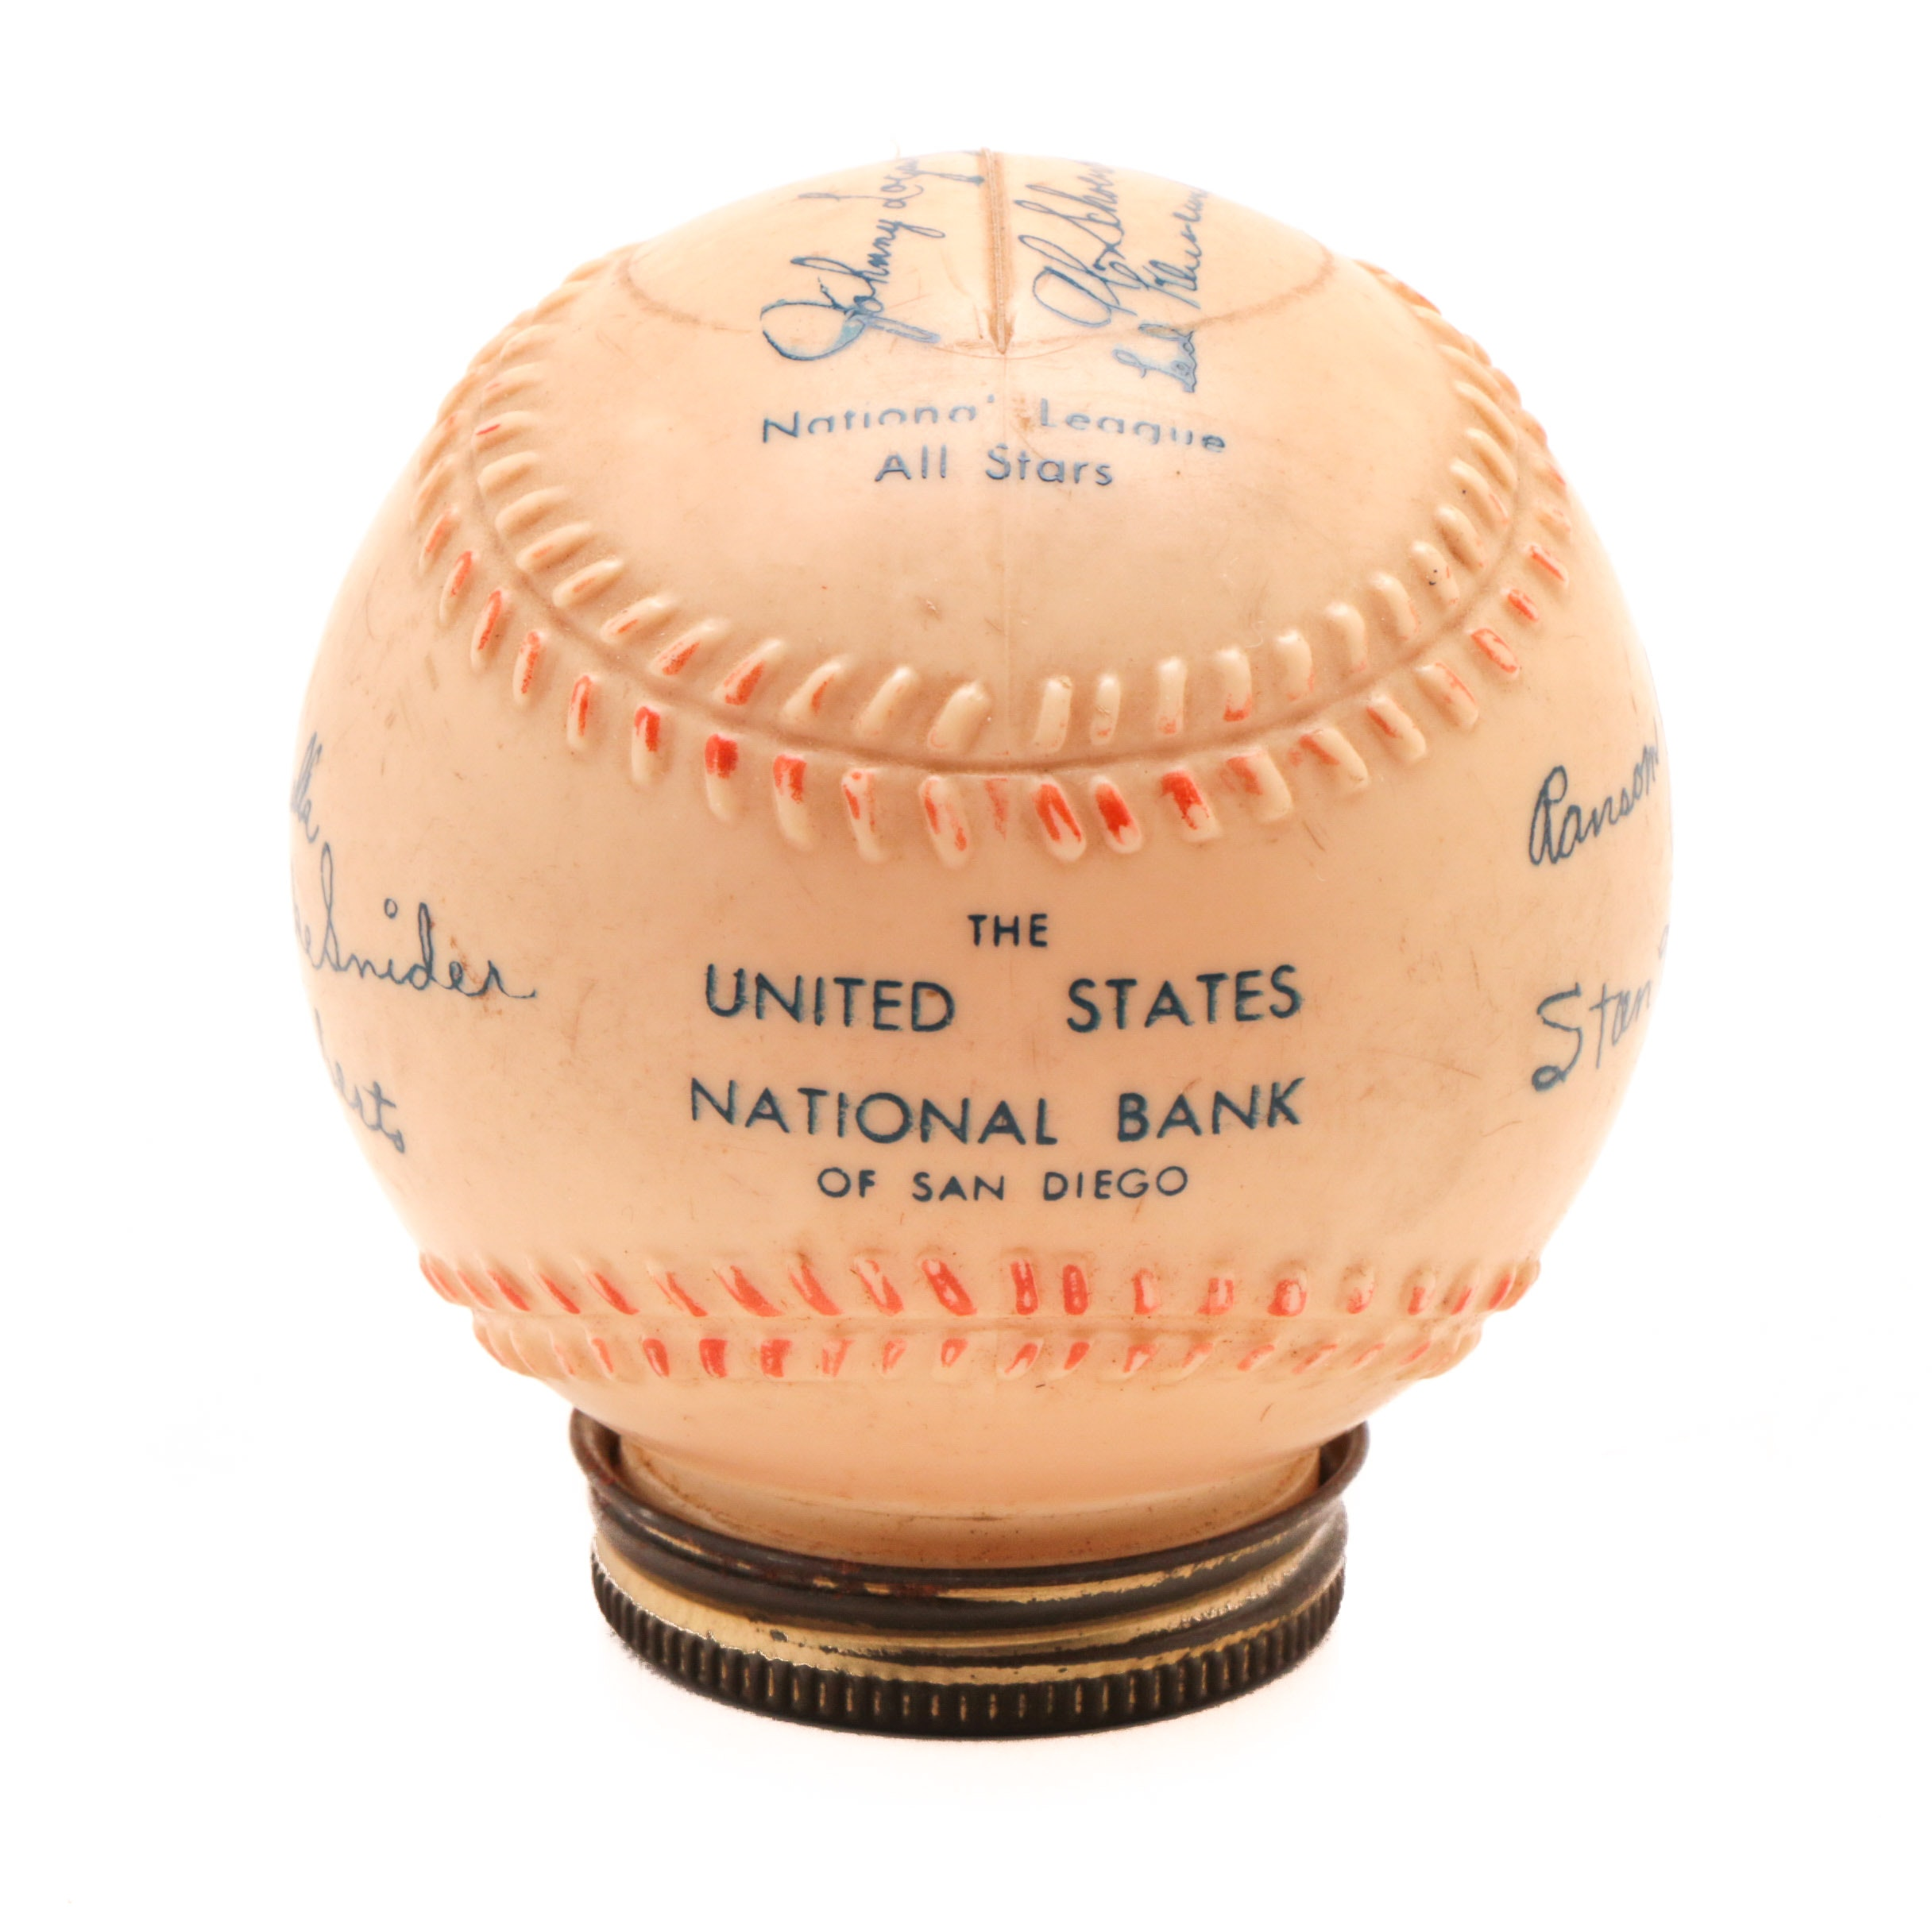 1950s National League All-Stars Baseball Bank With Replica Signatures